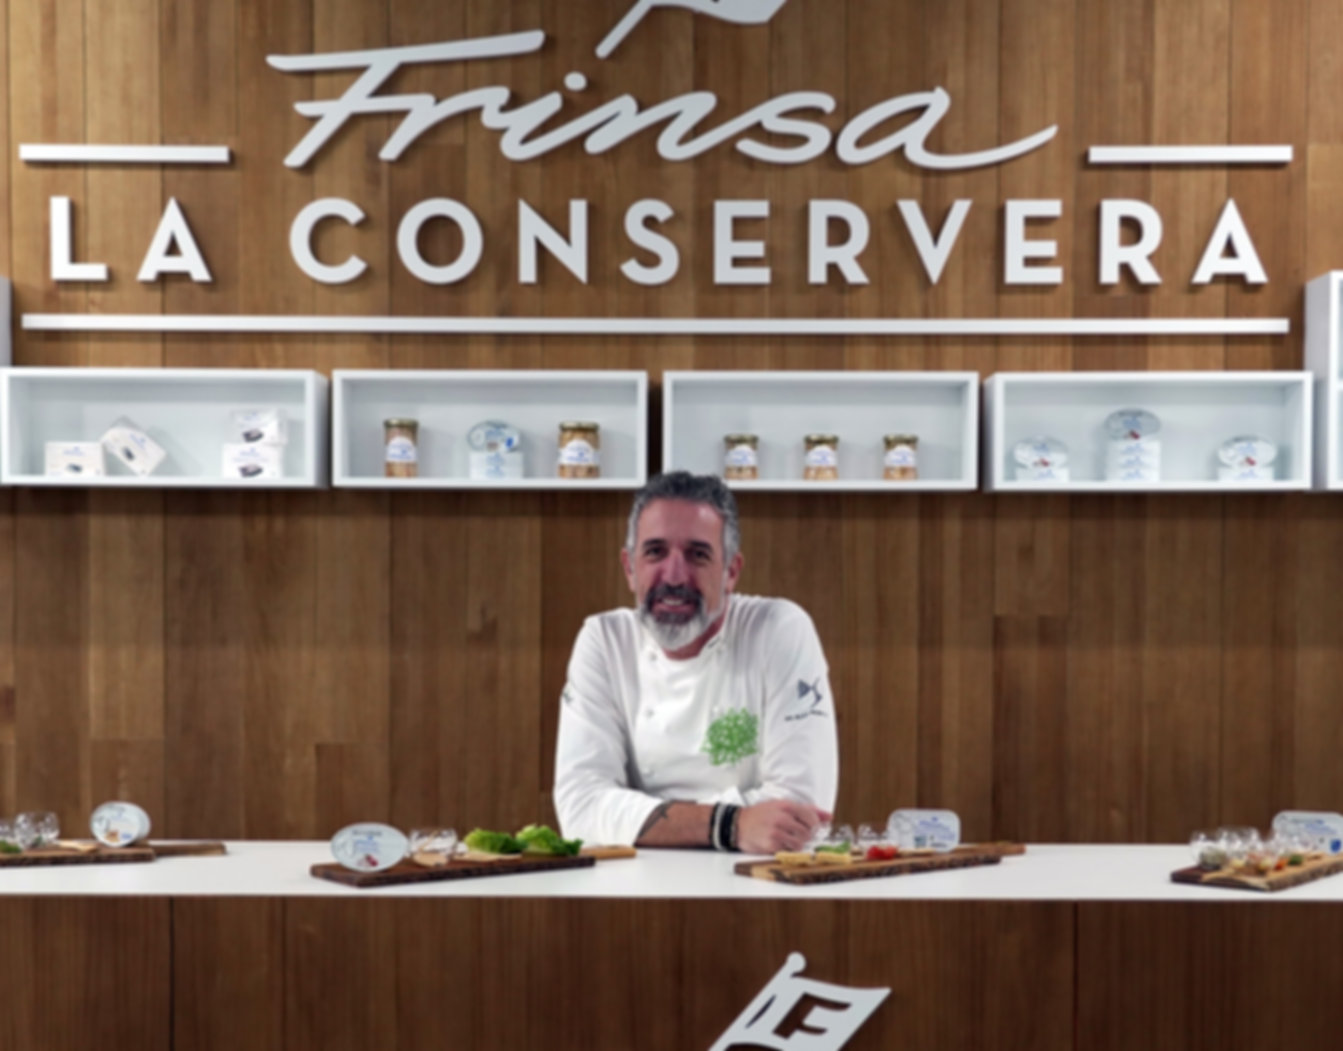 Pop Up Frinsa (Producto) - GastroMadrid